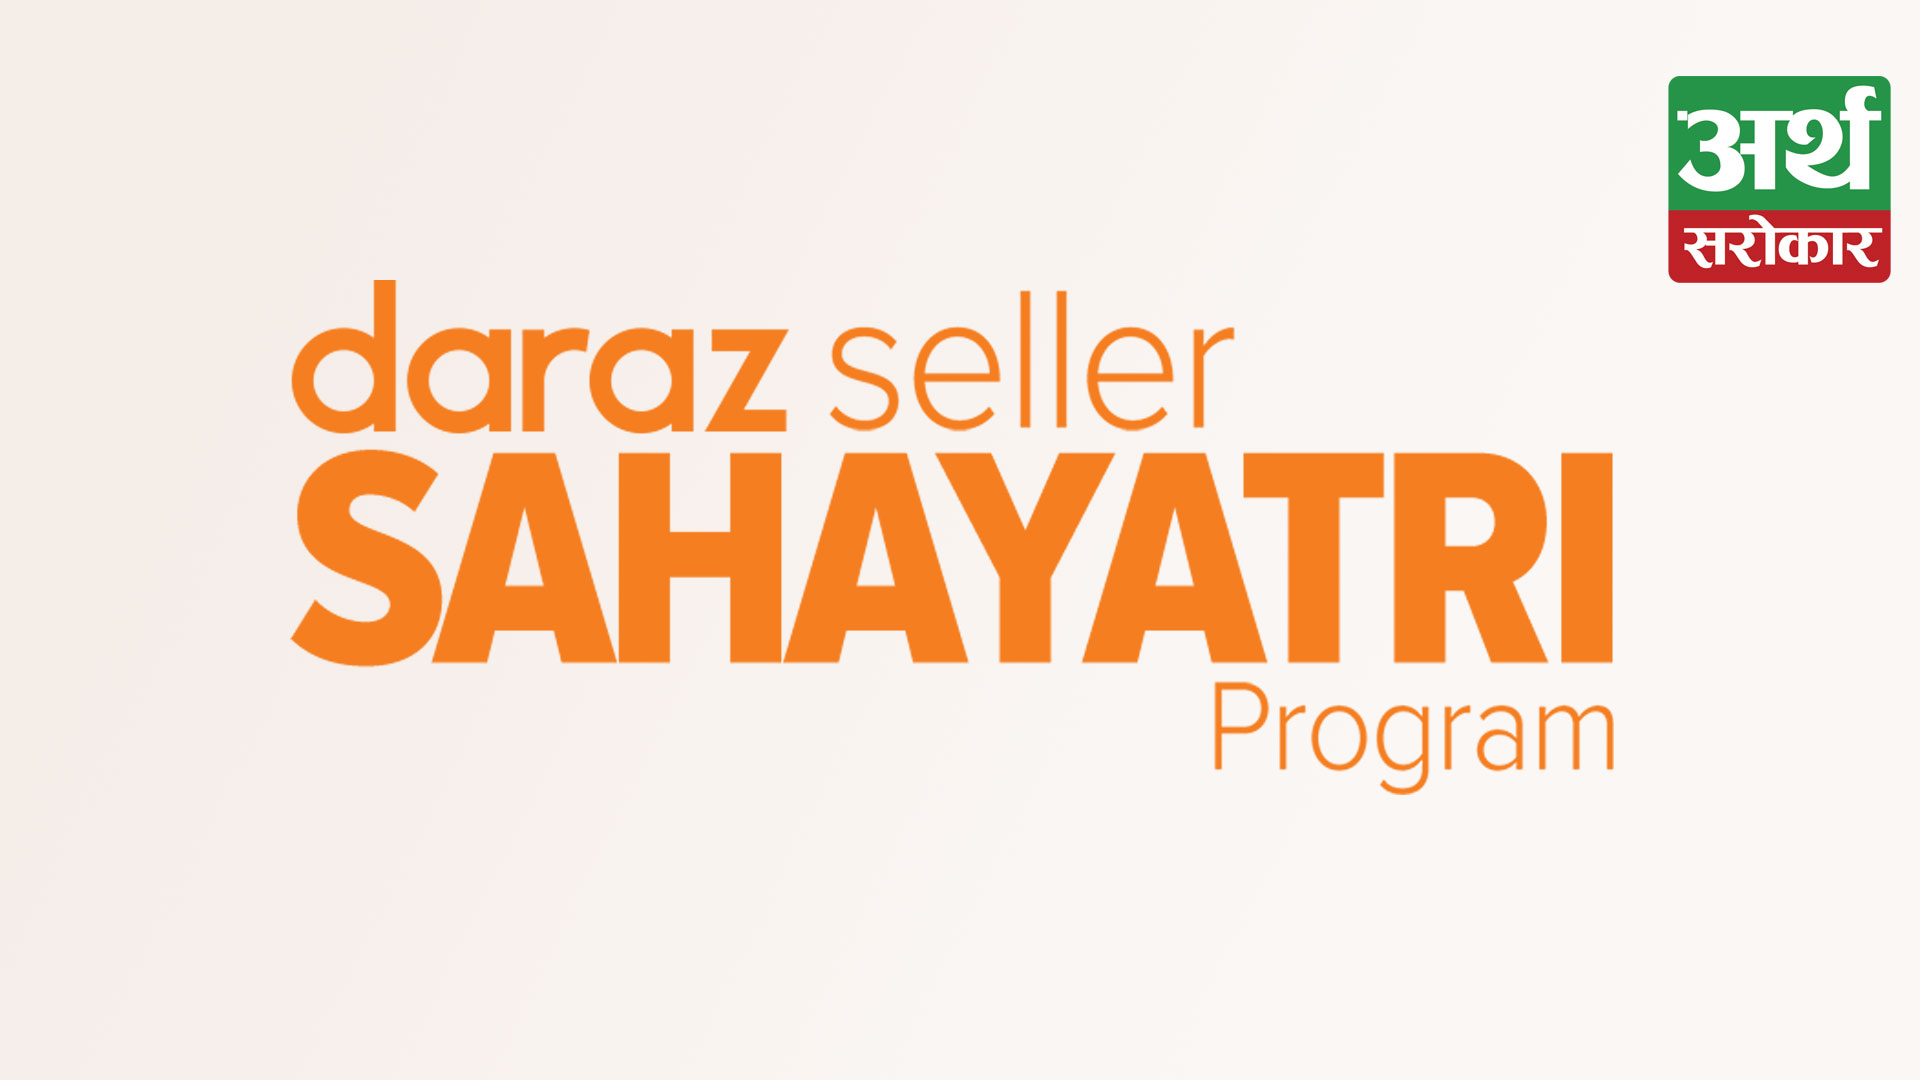 Daraz Relaunches Sahayatri Stimulus Package To Support Recovery of Small and Medium Sized Enterprises